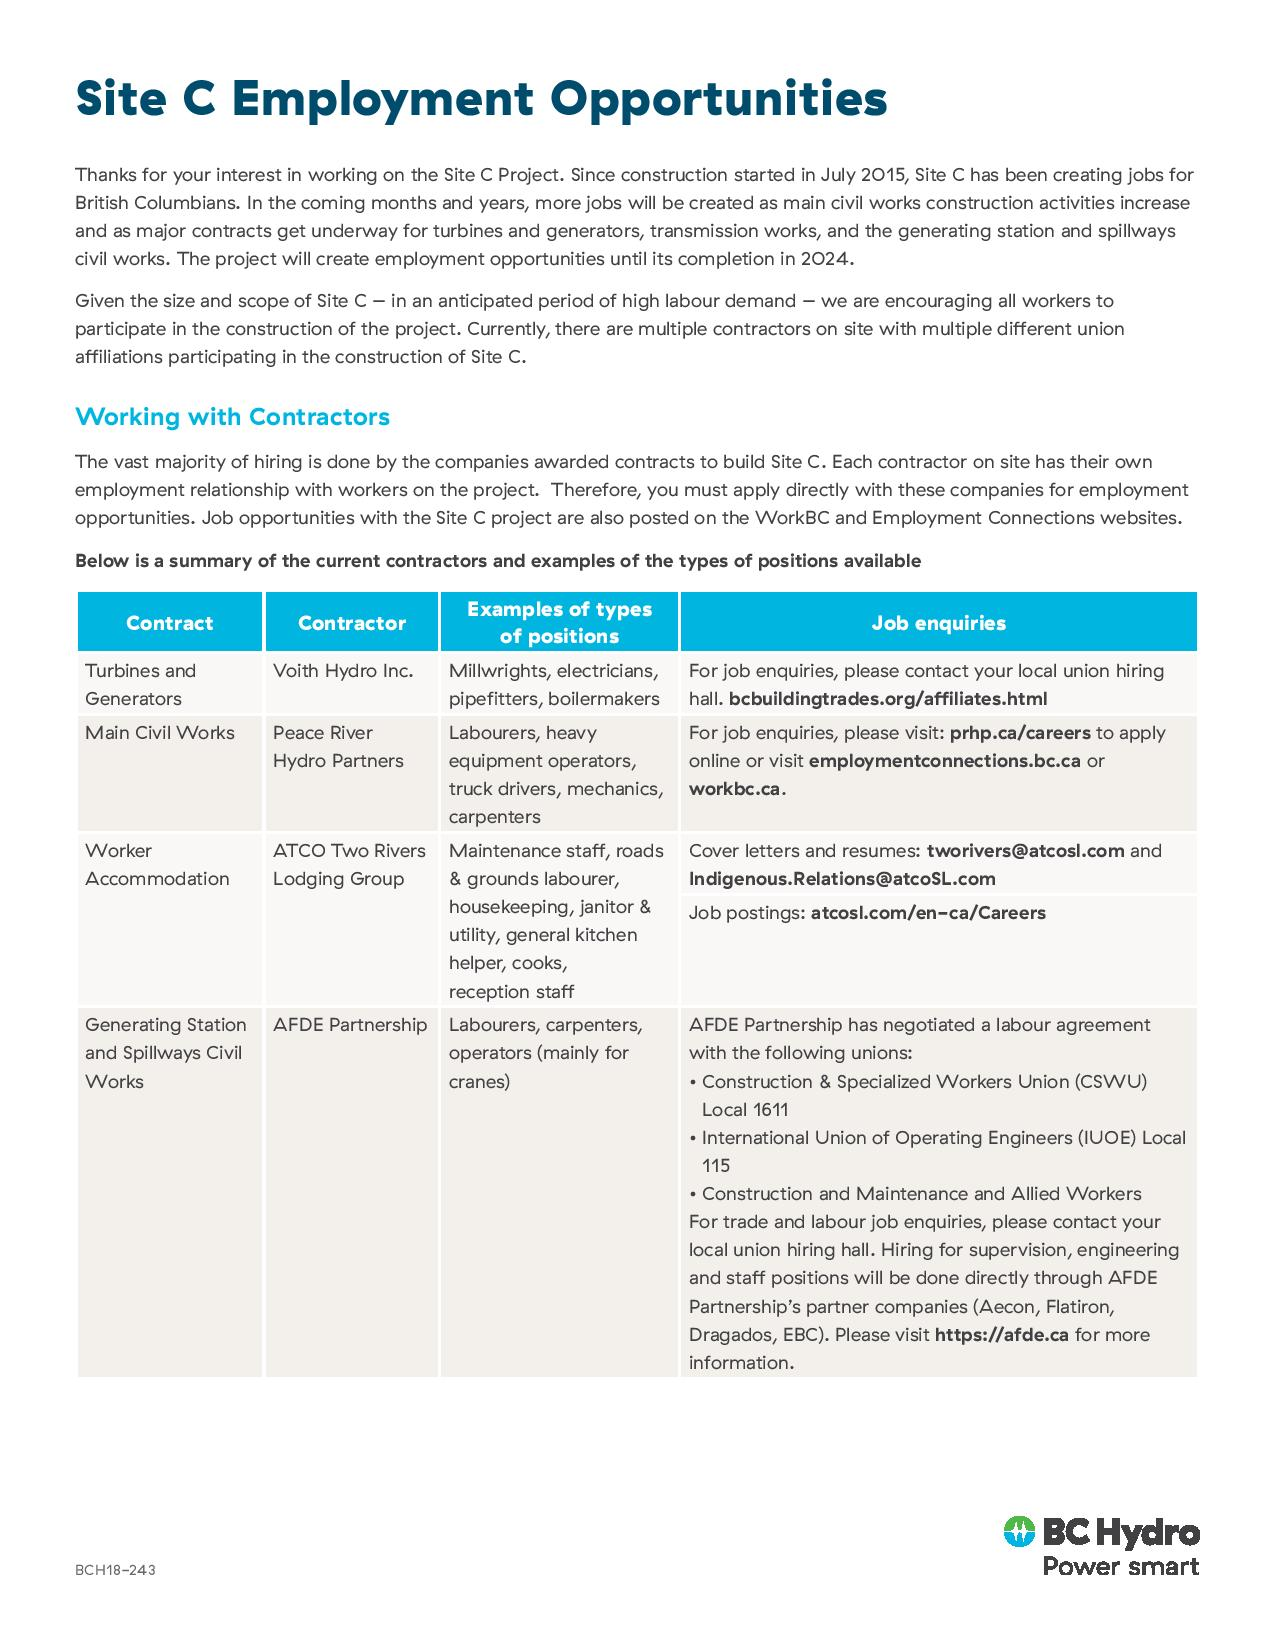 Site C employment opportunities package April 2018-page-001.jpg